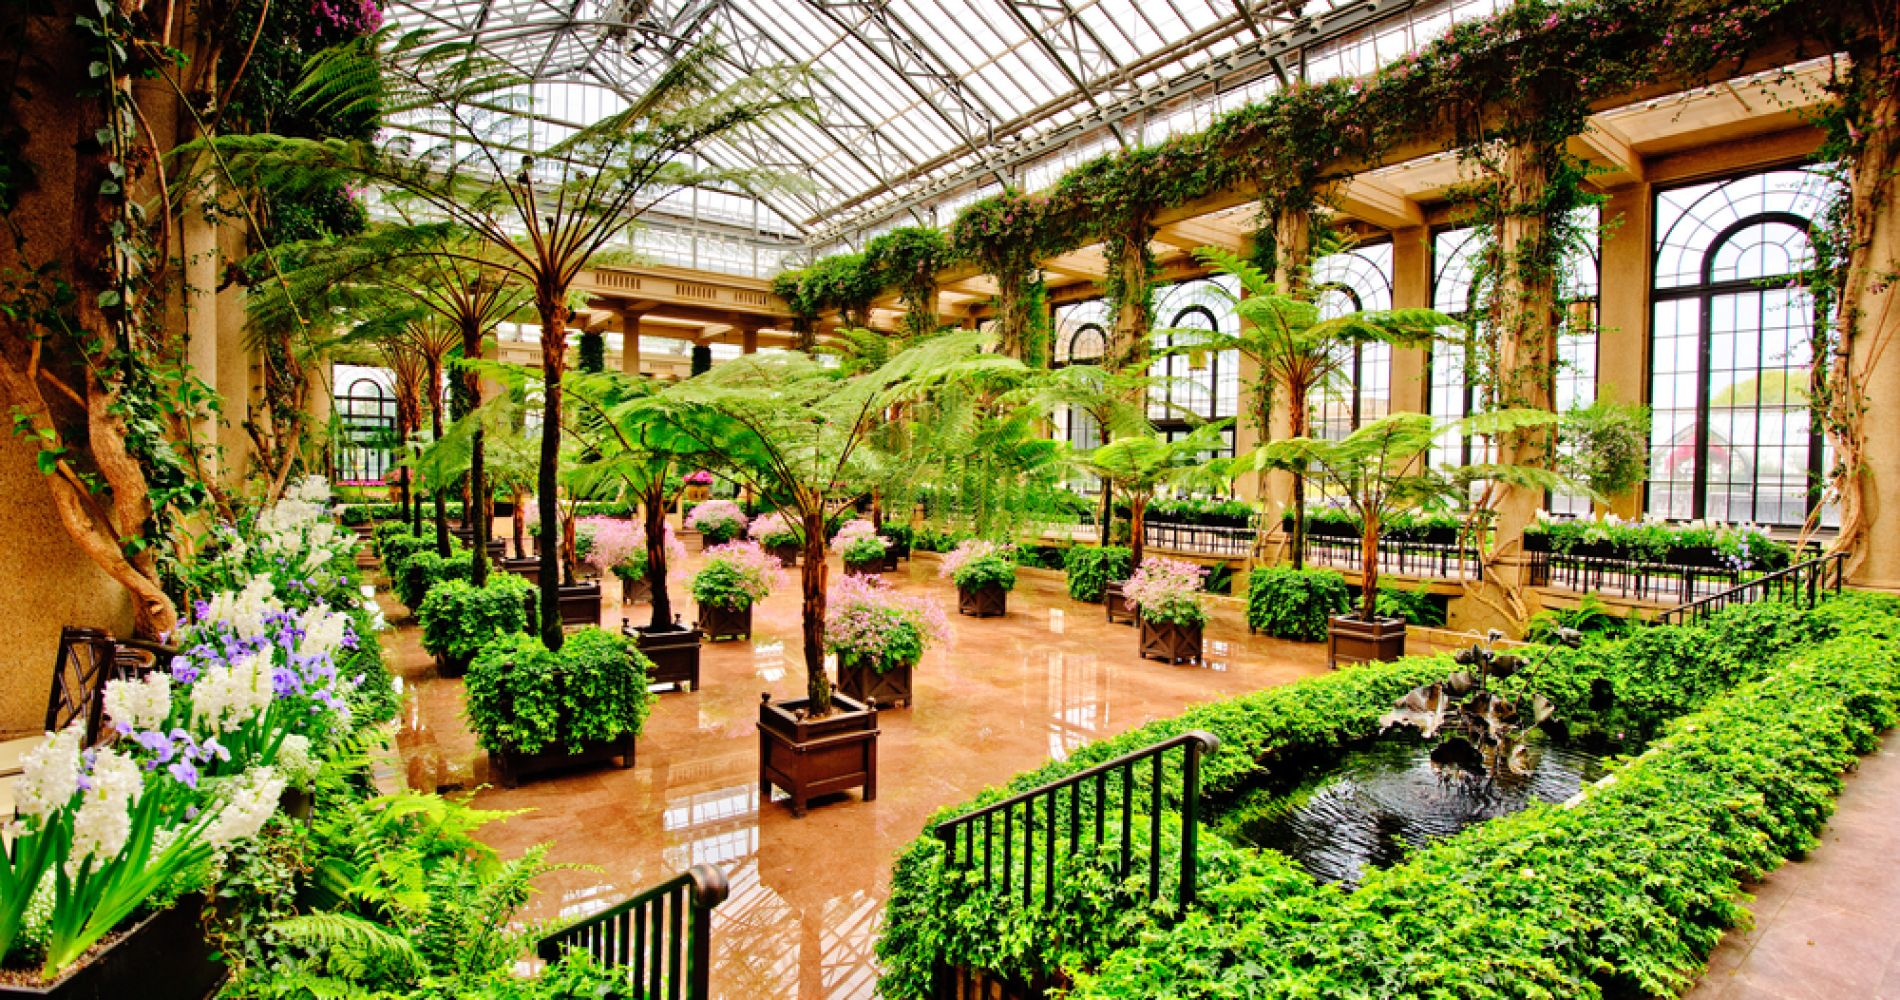 Longwood Gardens and other attractions in Philadelphia